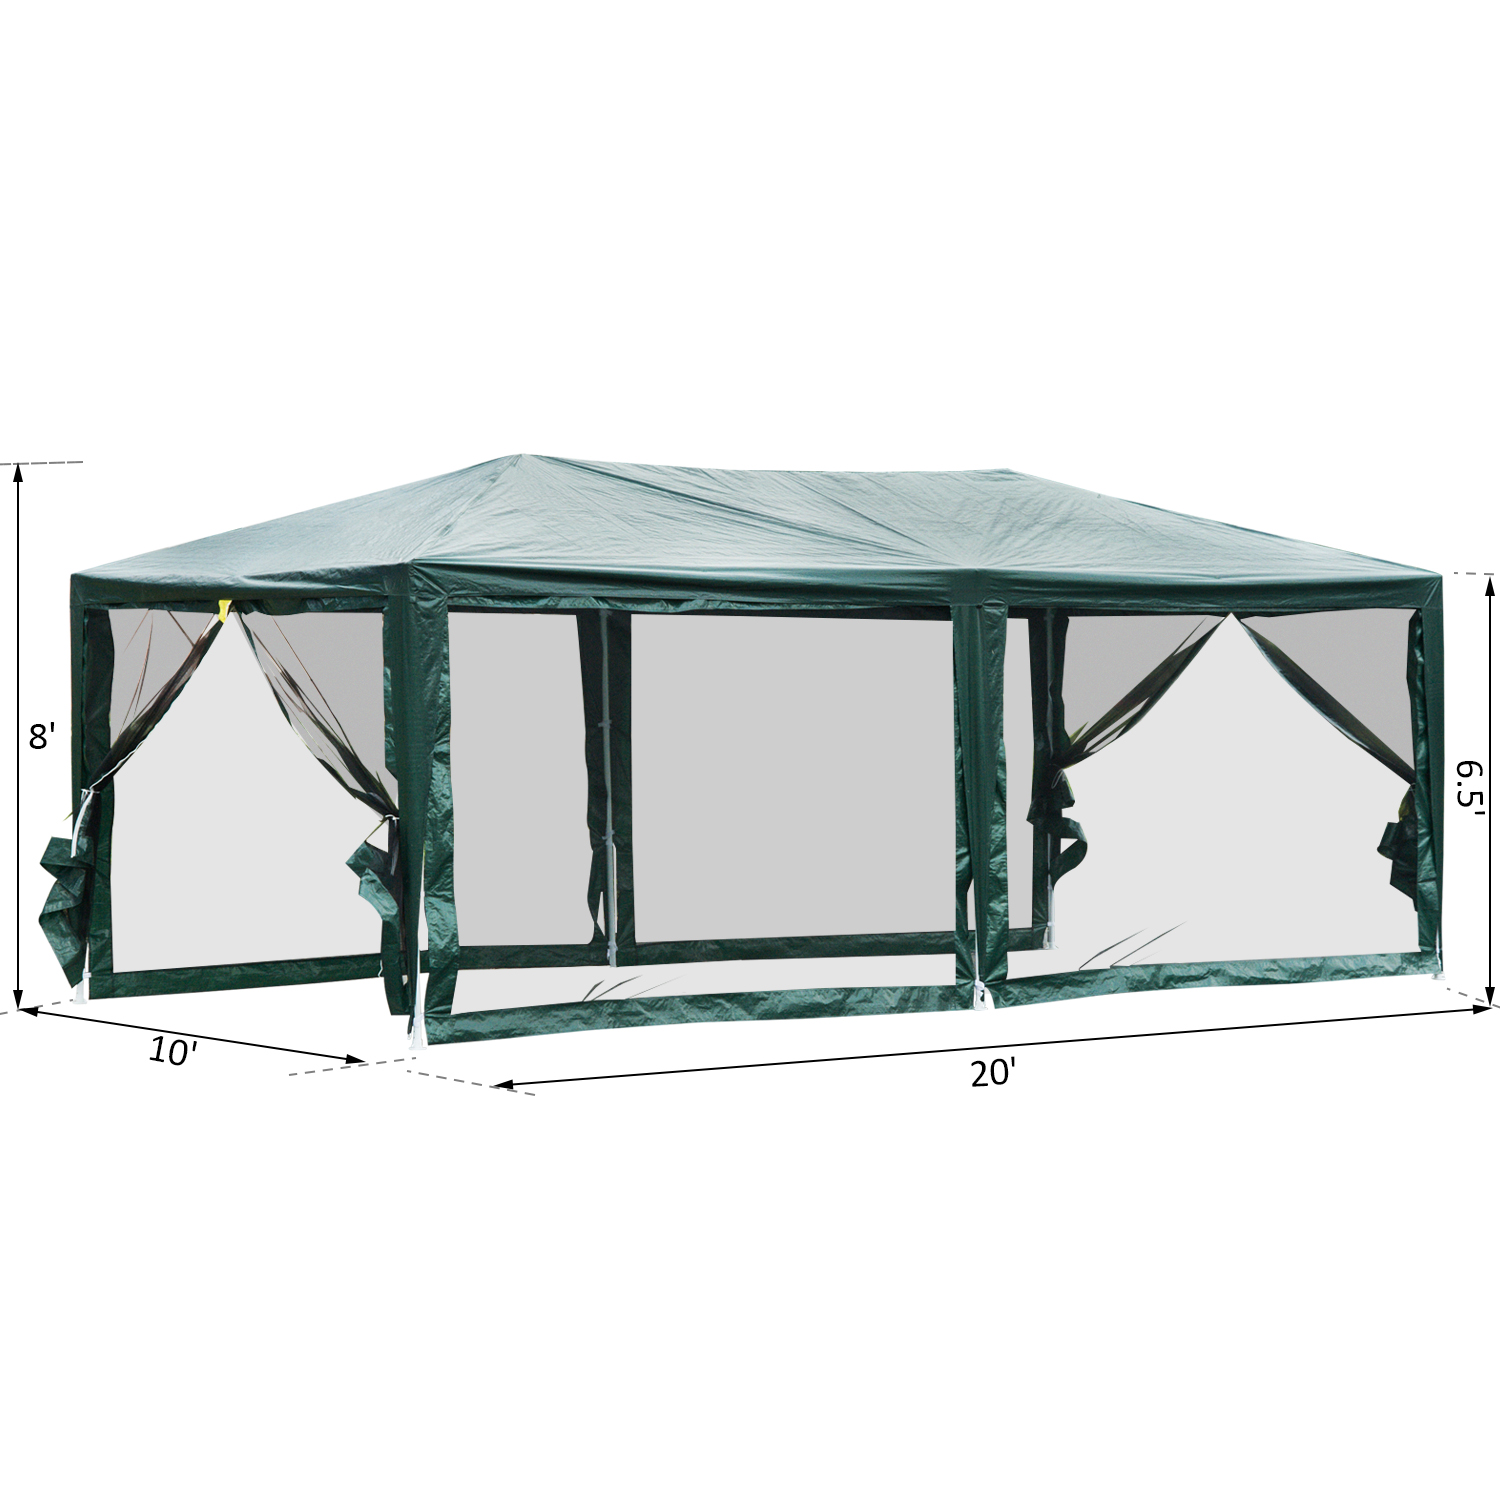 10-039-x-20-039-Gazebo-Canopy-Cover-Tent-Patio-Party-w-Removable-Mesh-Side-Walls thumbnail 3